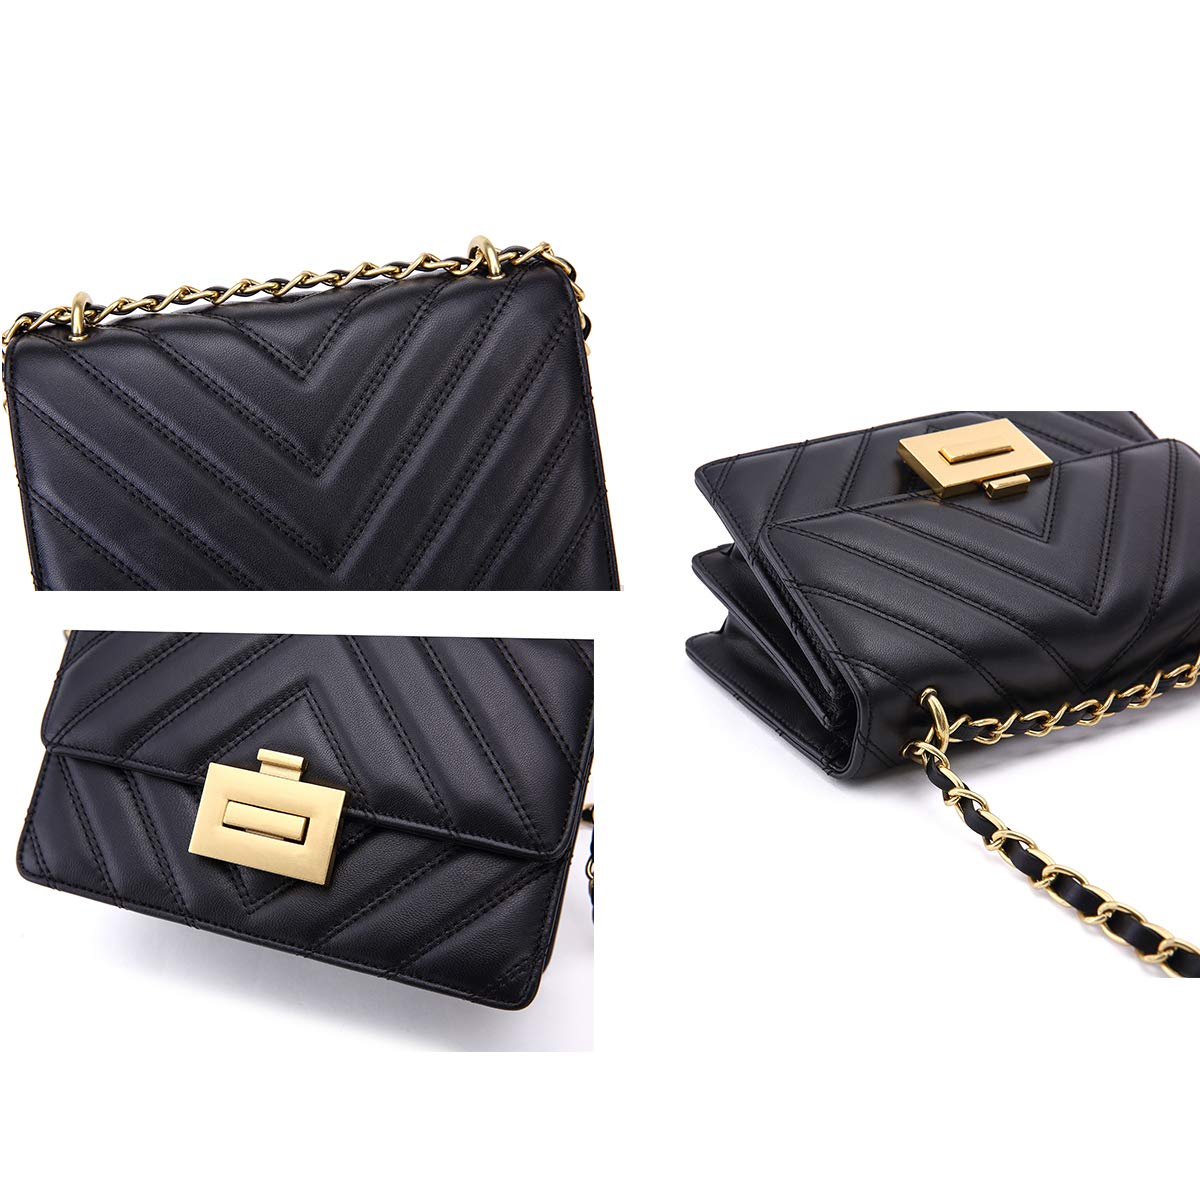 Neverout Classic Crossbody Shoulder Bag for Women Quilted Lamb Leather  Handbags Purse with 6 Card Holder Slots (NP2133) (V2-Black)  Handbags   Amazon.com 8c1b4cf2ede26